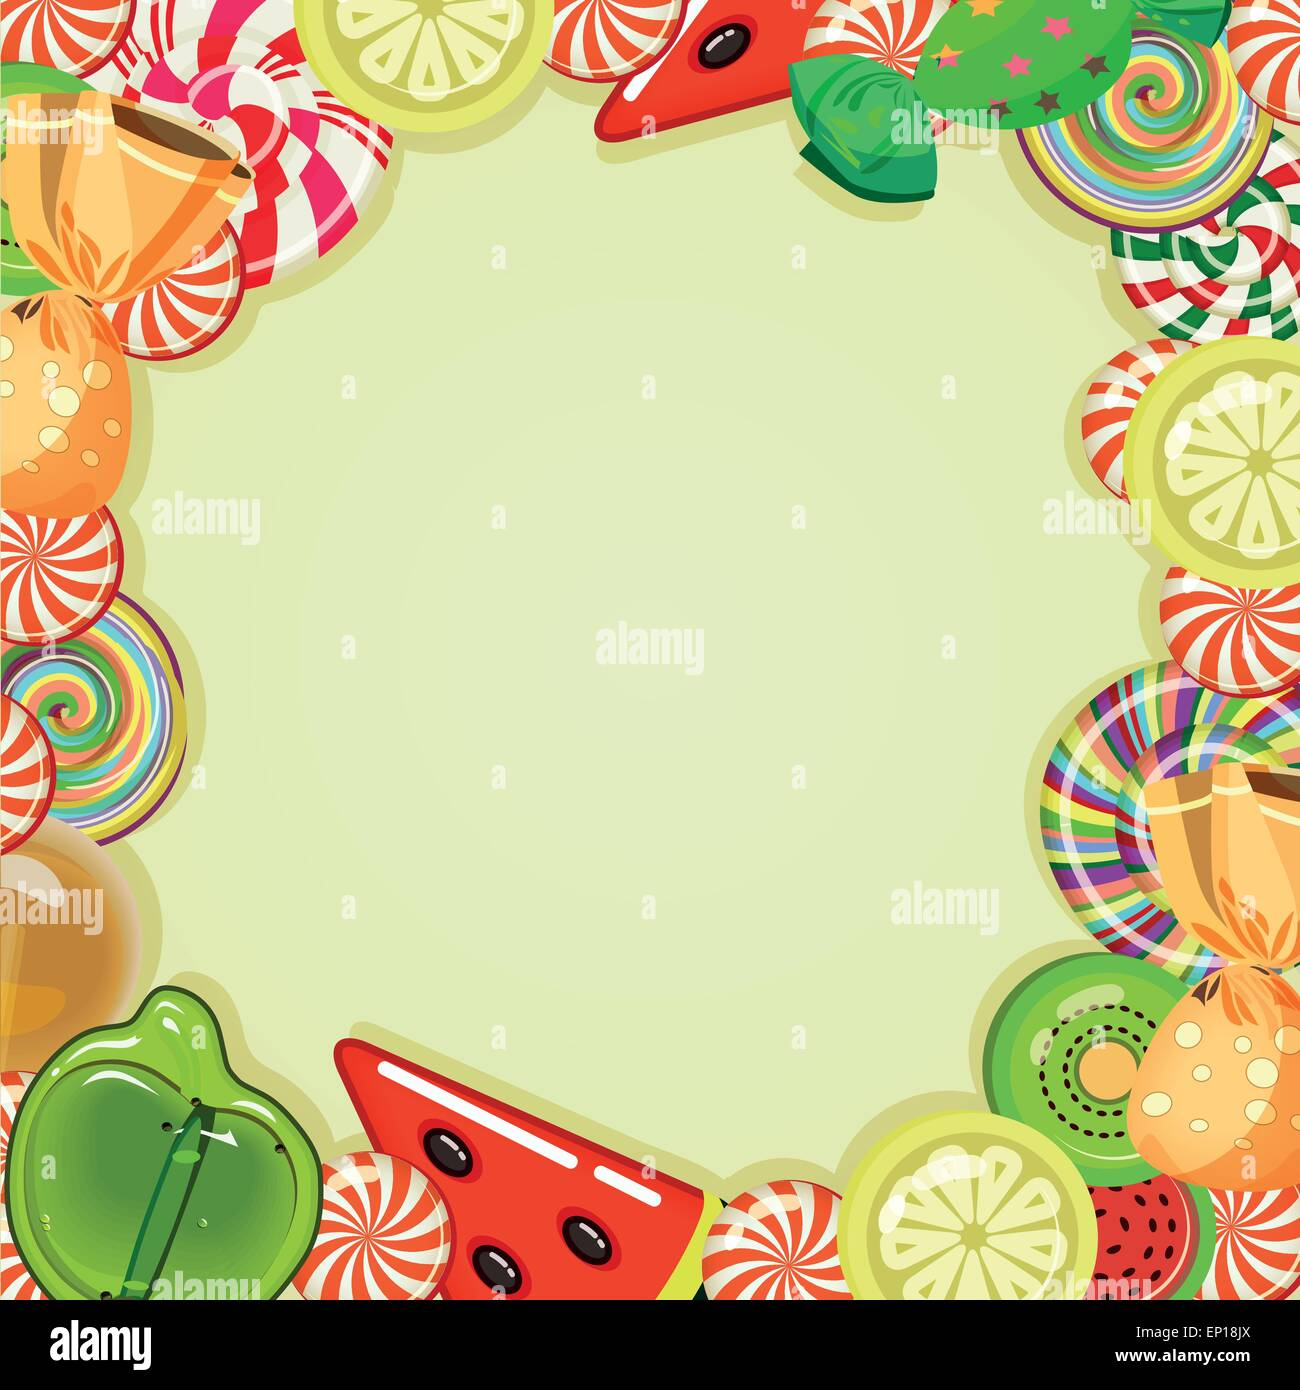 candy shop frame vector illustration background with